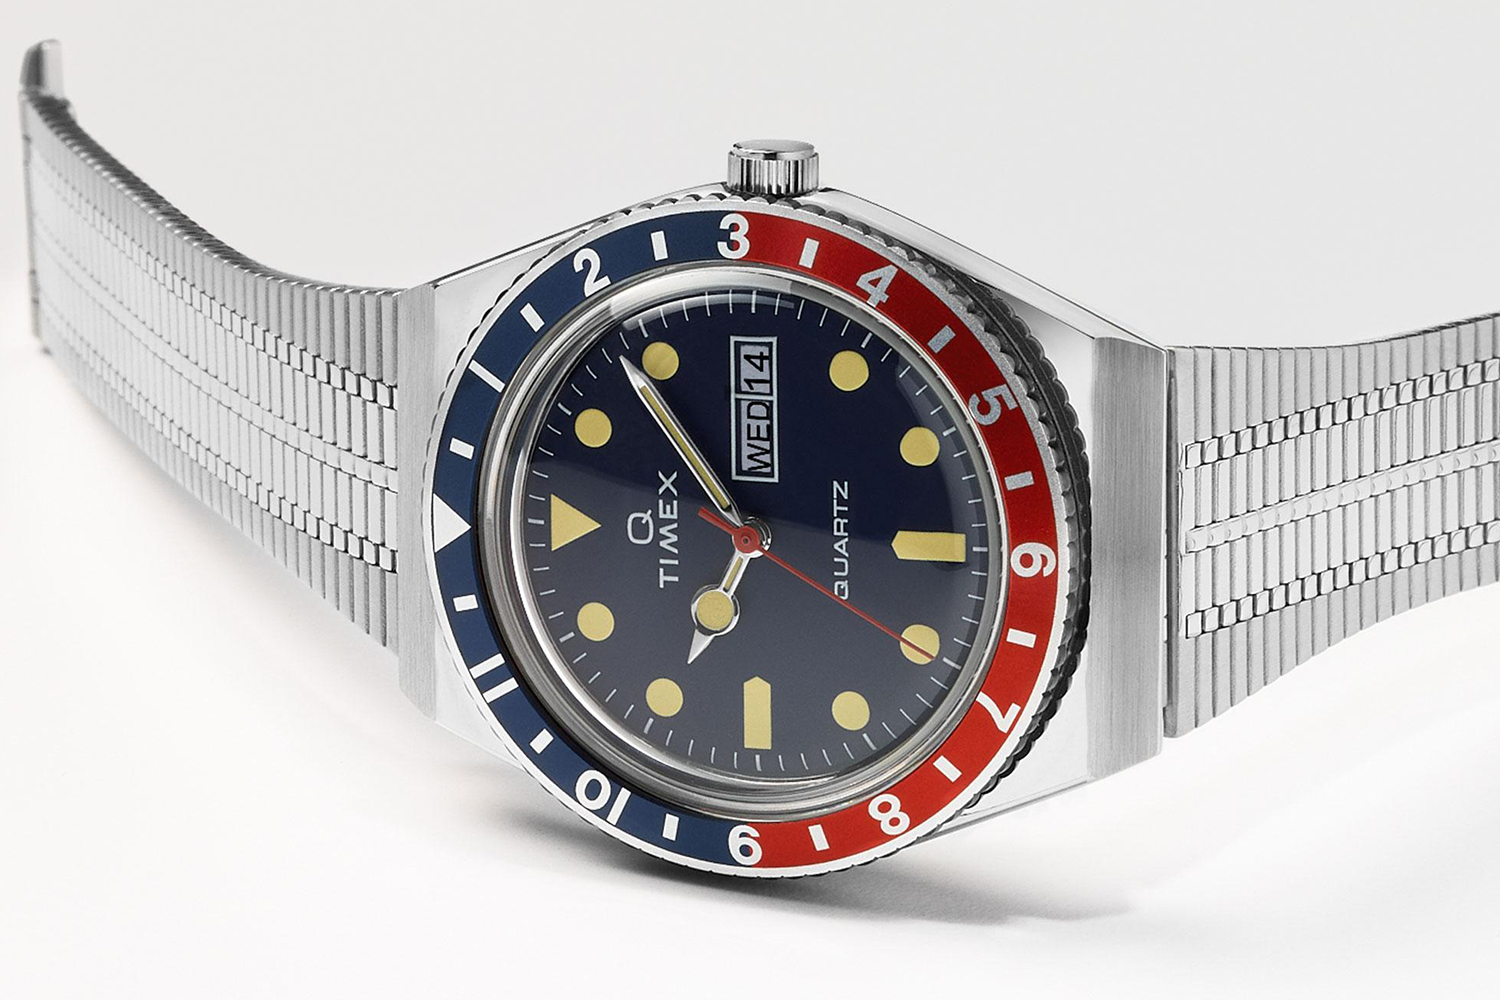 Timex Reissued a '70s Watch That Rips Off Rolex (And We Love It)